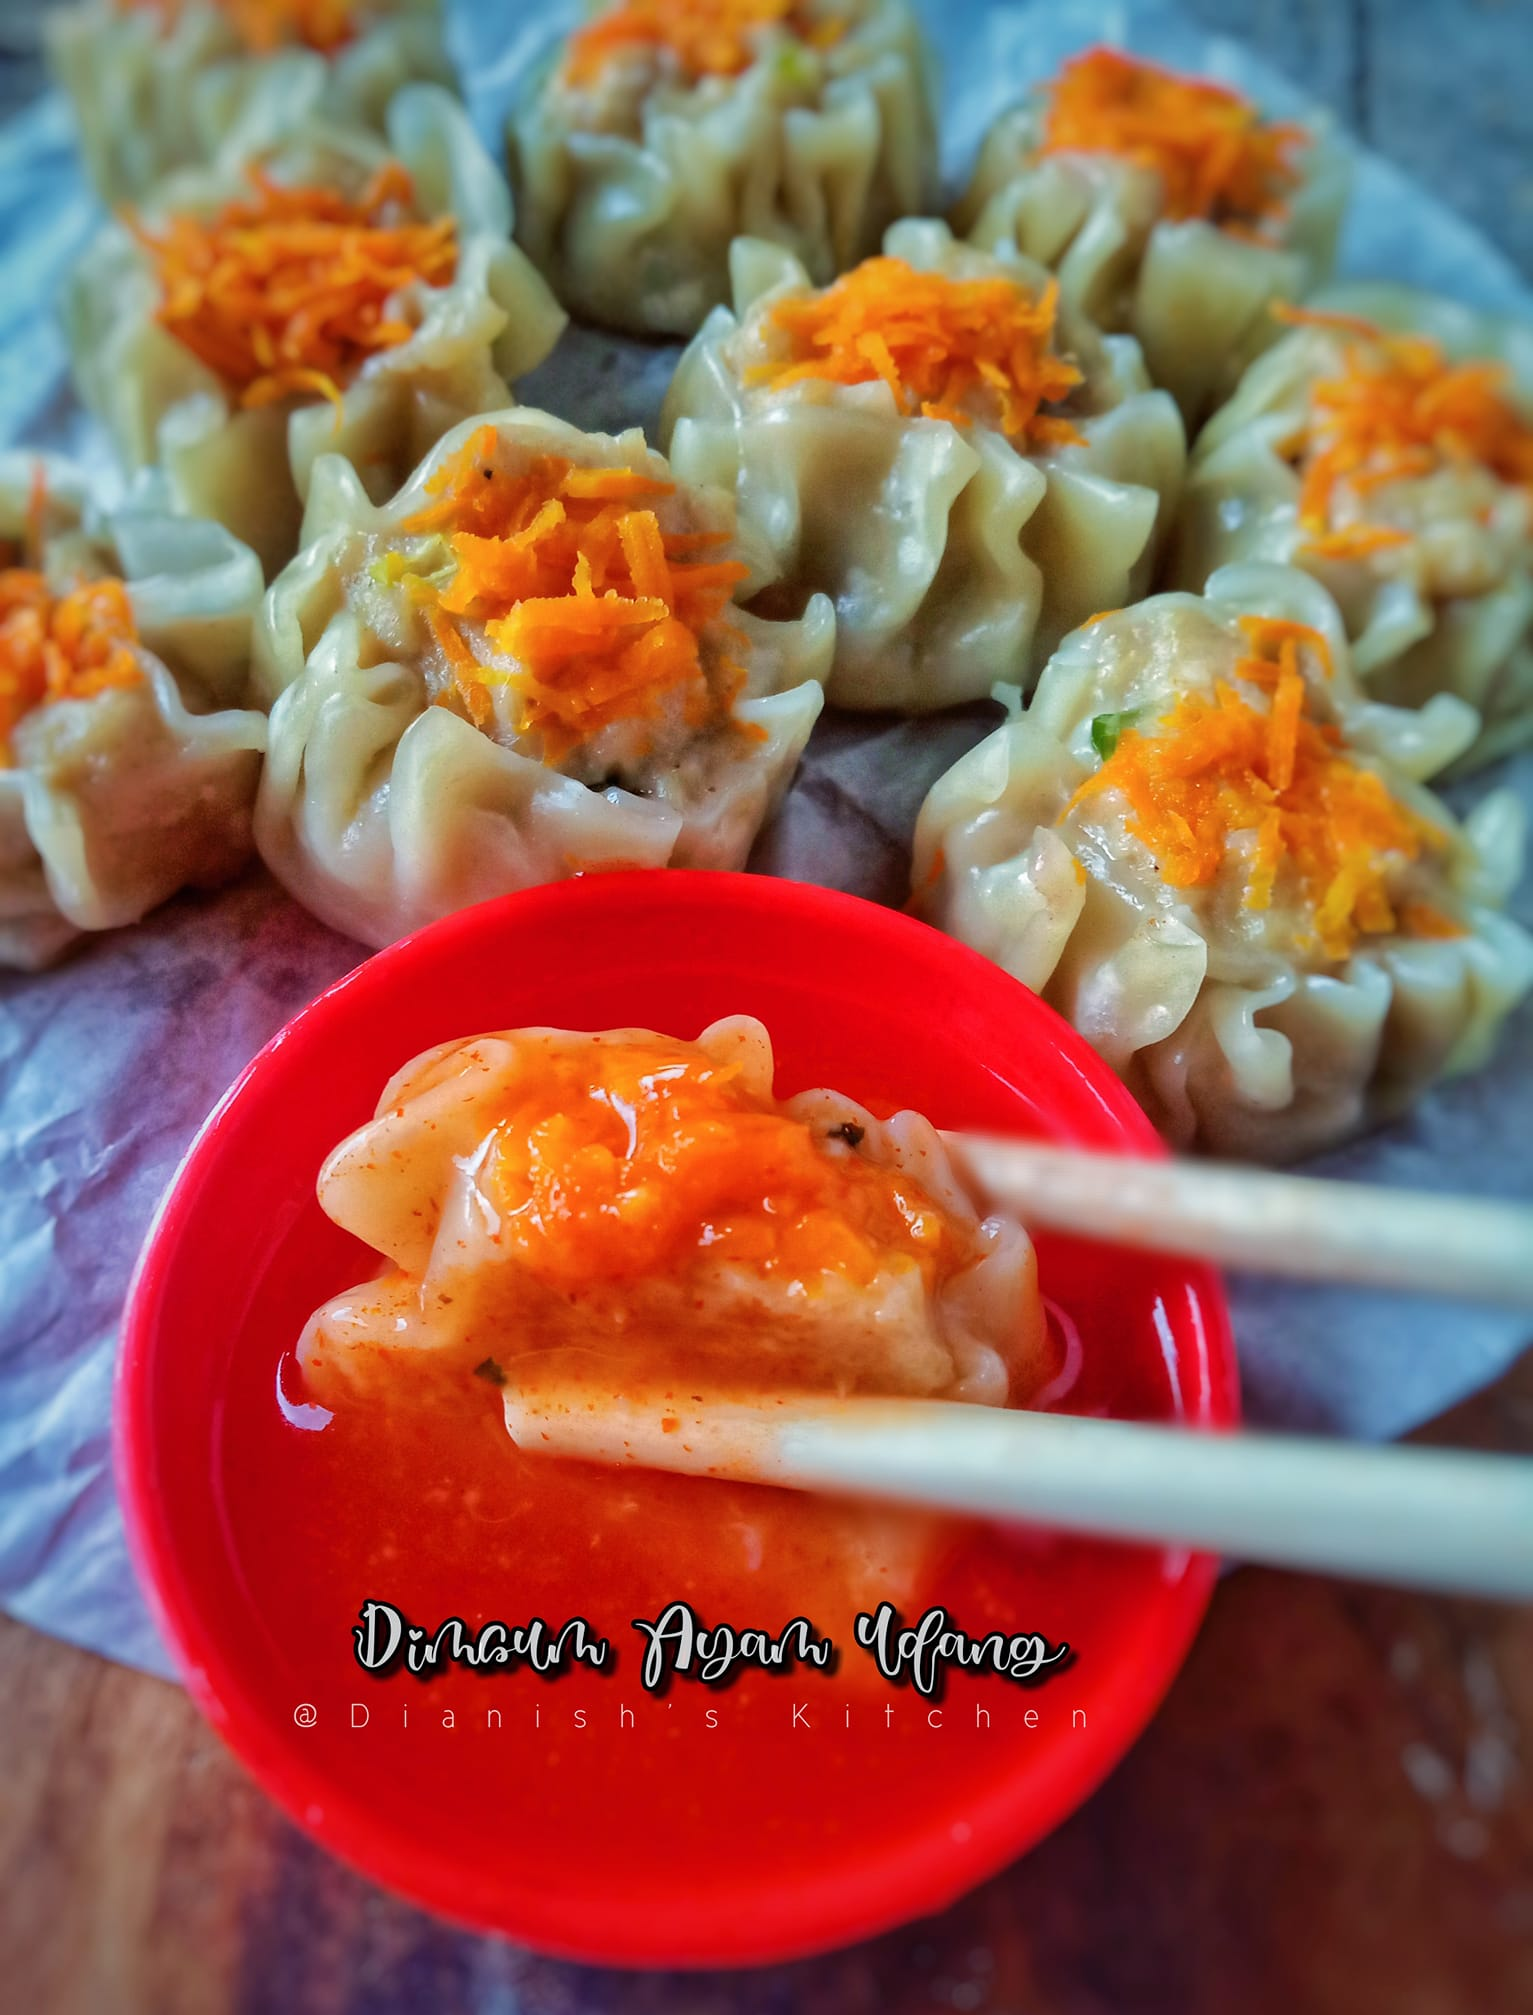 DIMSUM AYAM UDANG by Dianish's Kitchen